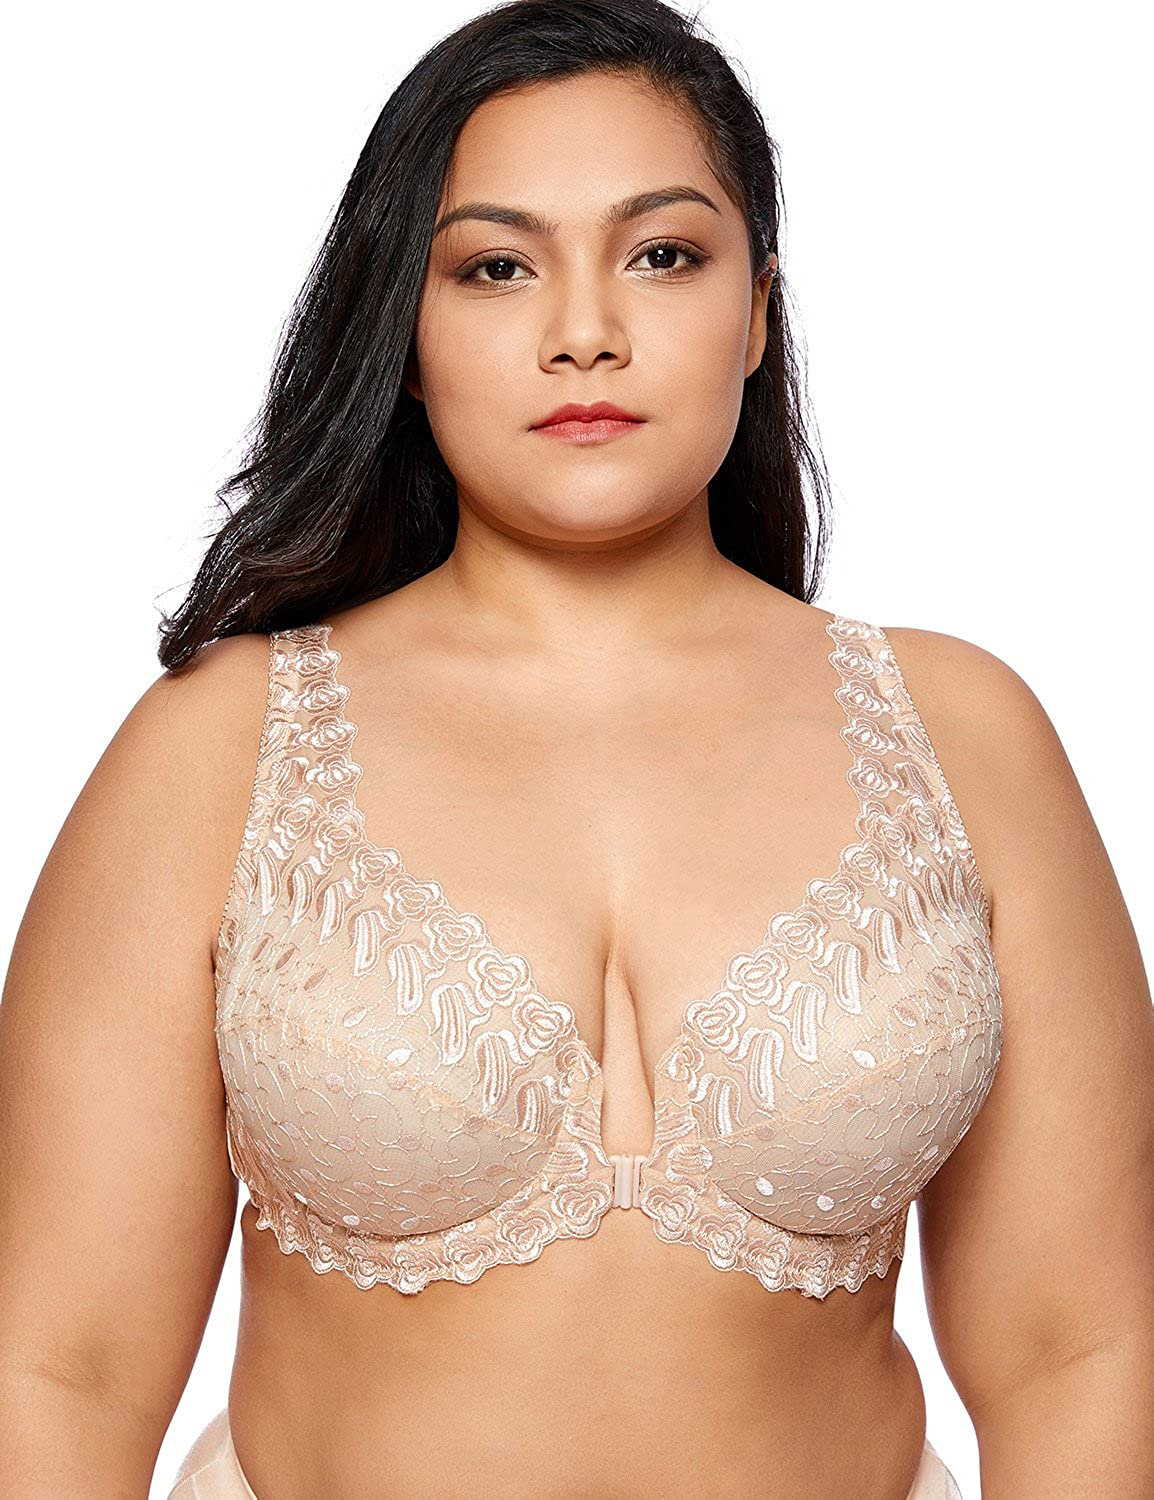 Delimira Womens Plus Size Non-Padded Embroidered Front Hook Underwired Bra